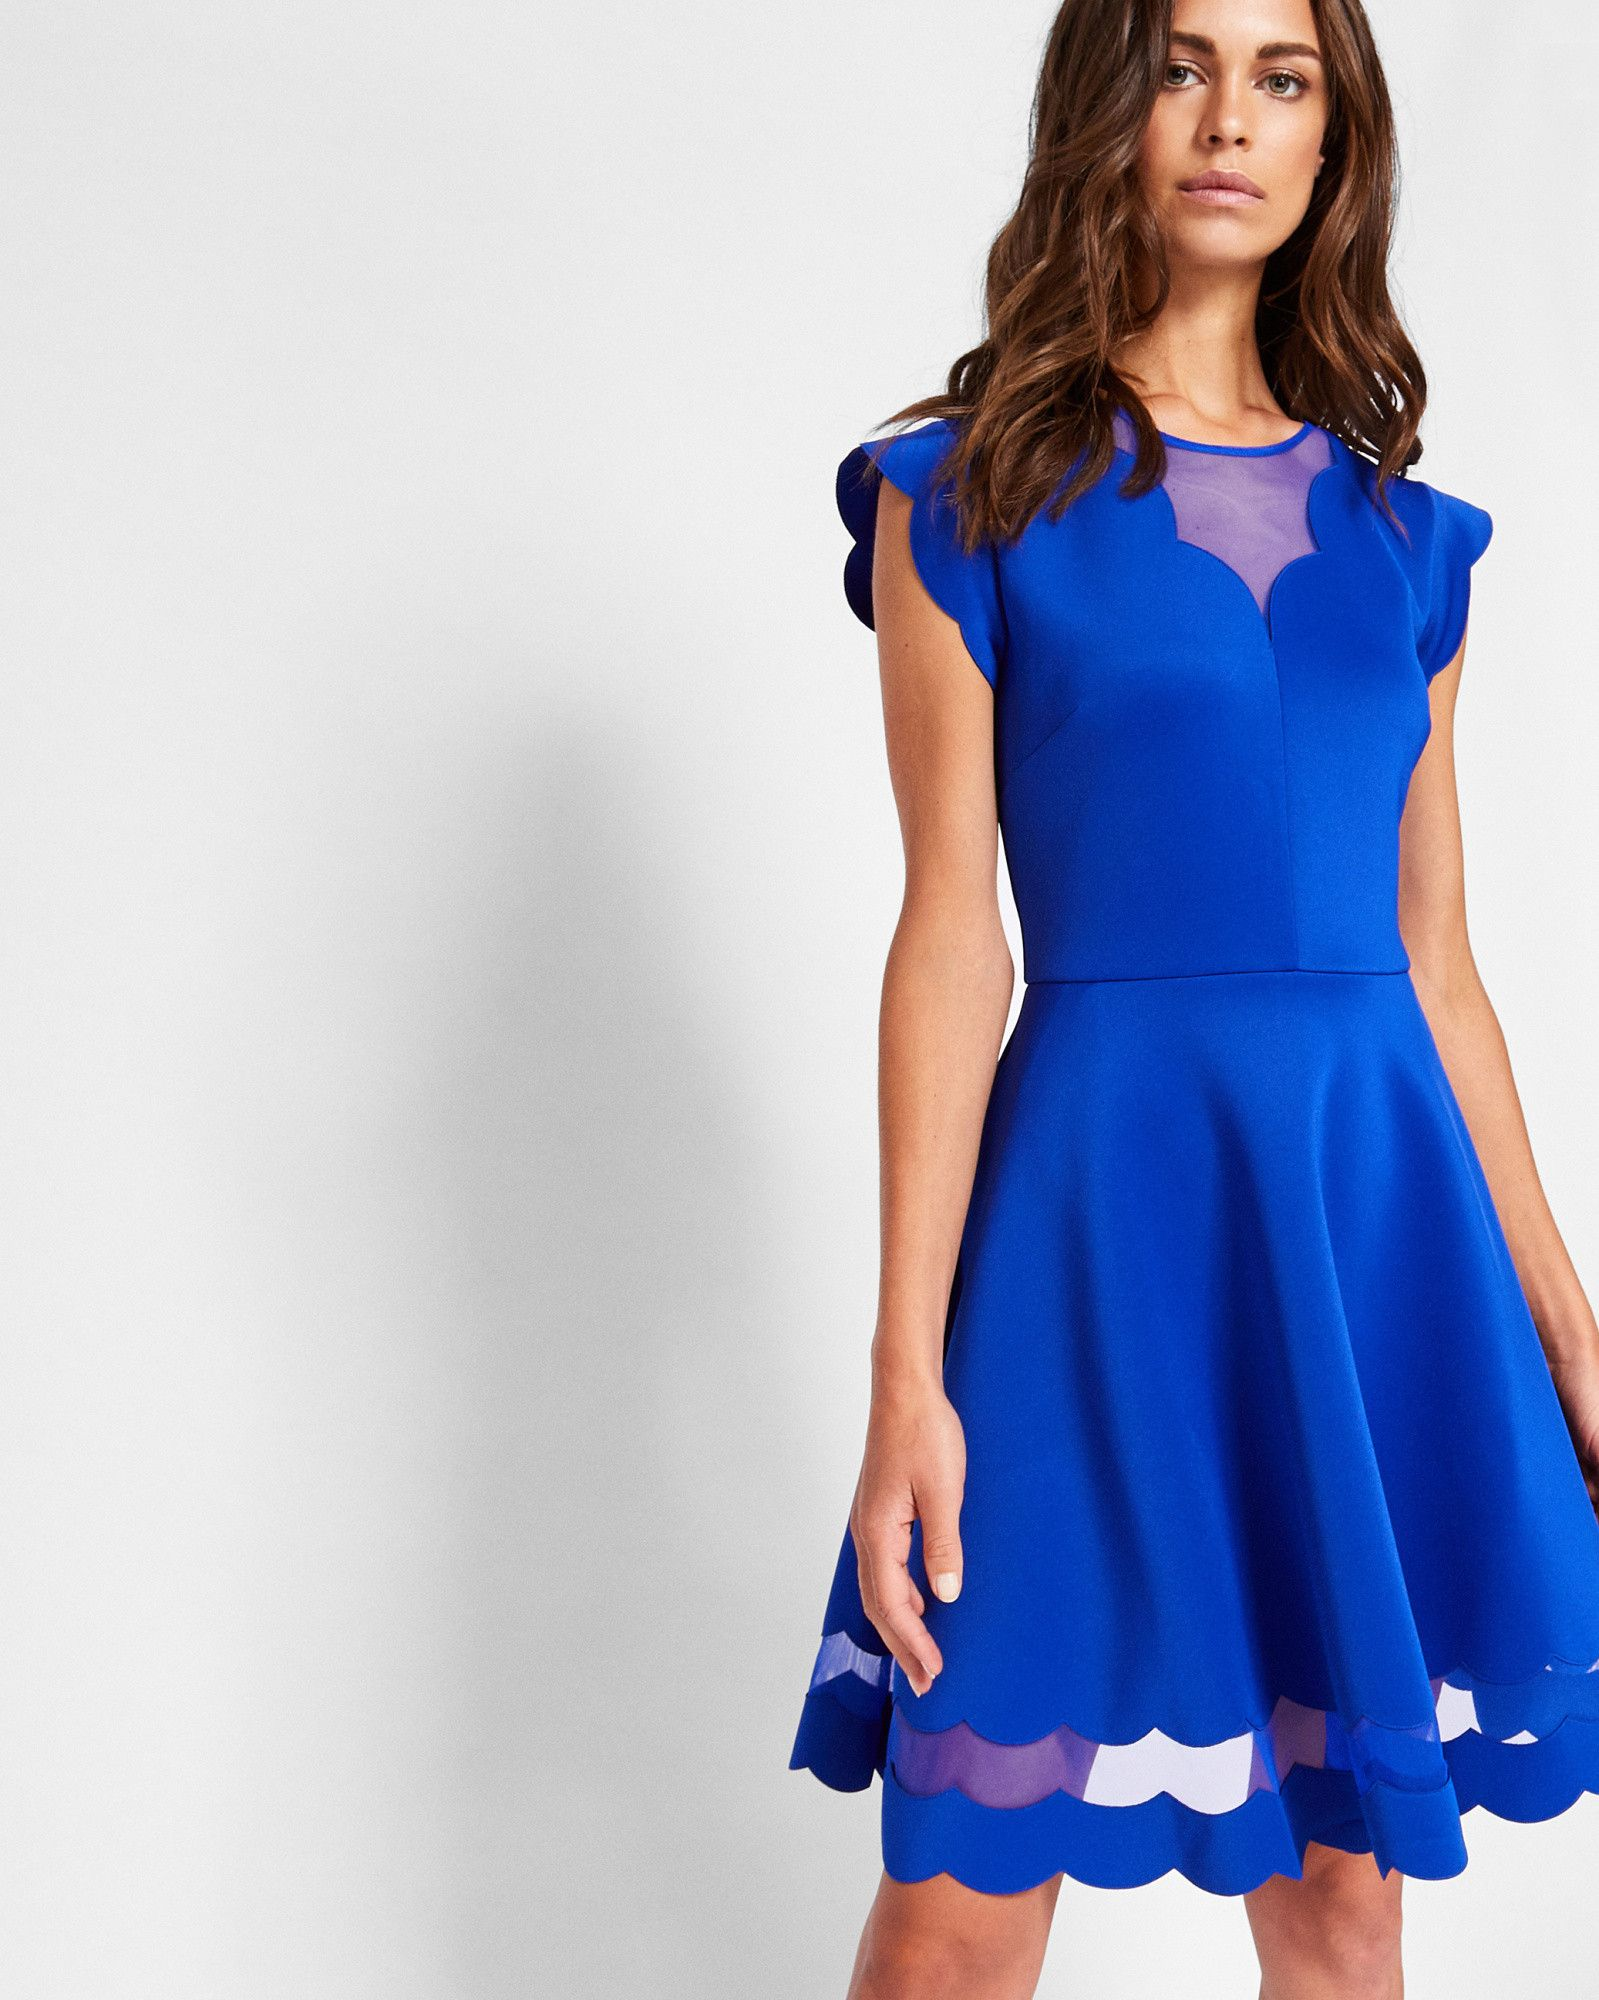 021a63b01 Ted Baker Scallop detail skater dress Bright Blue